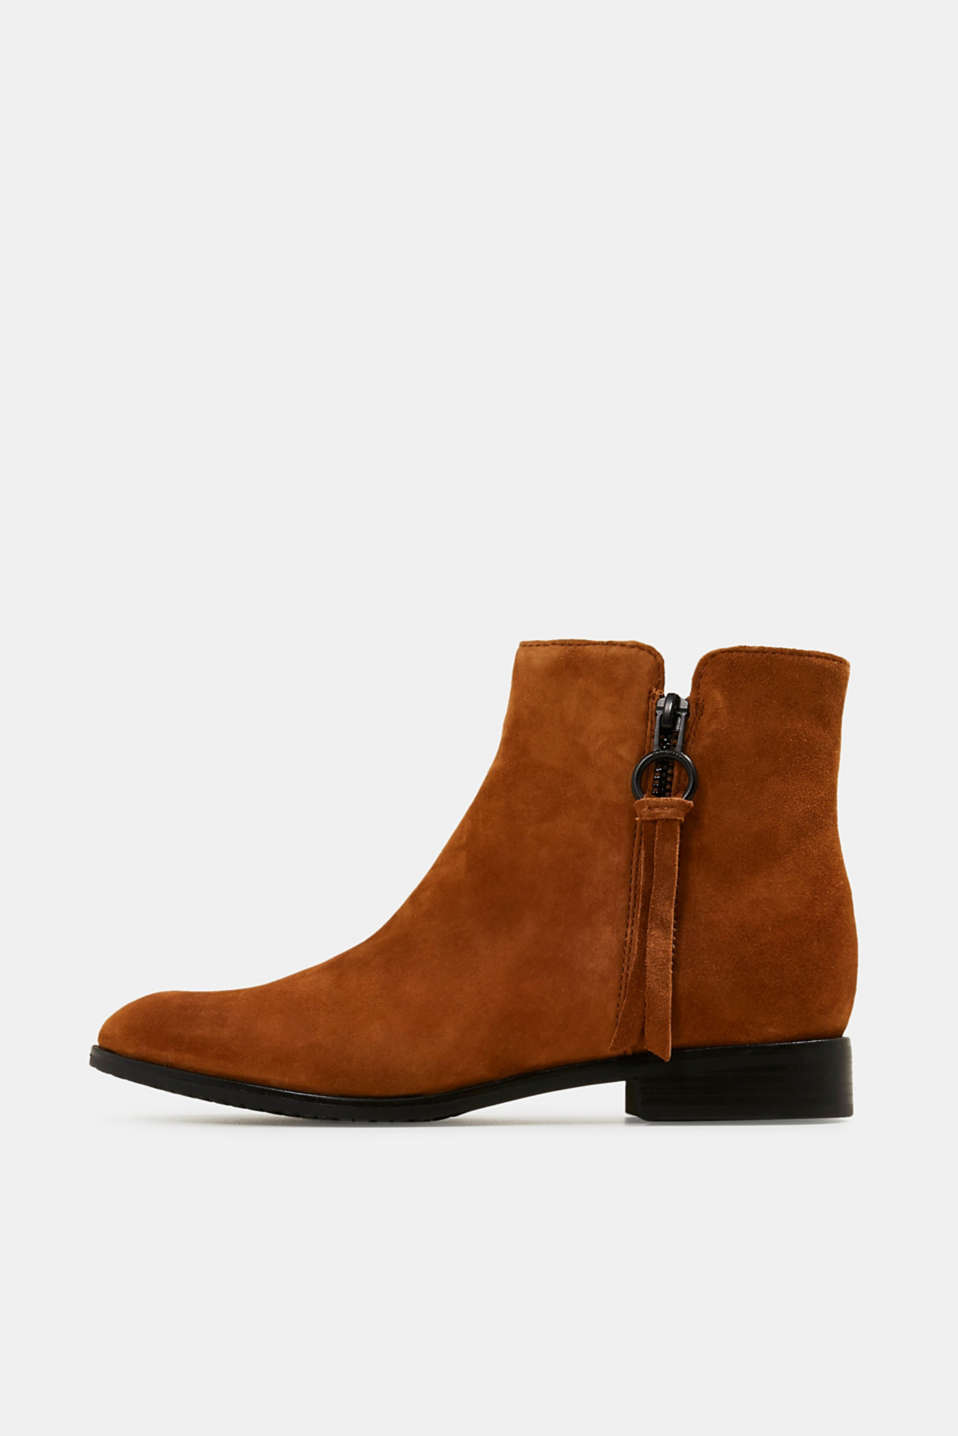 Esprit - Ankle boots made of 100% leather